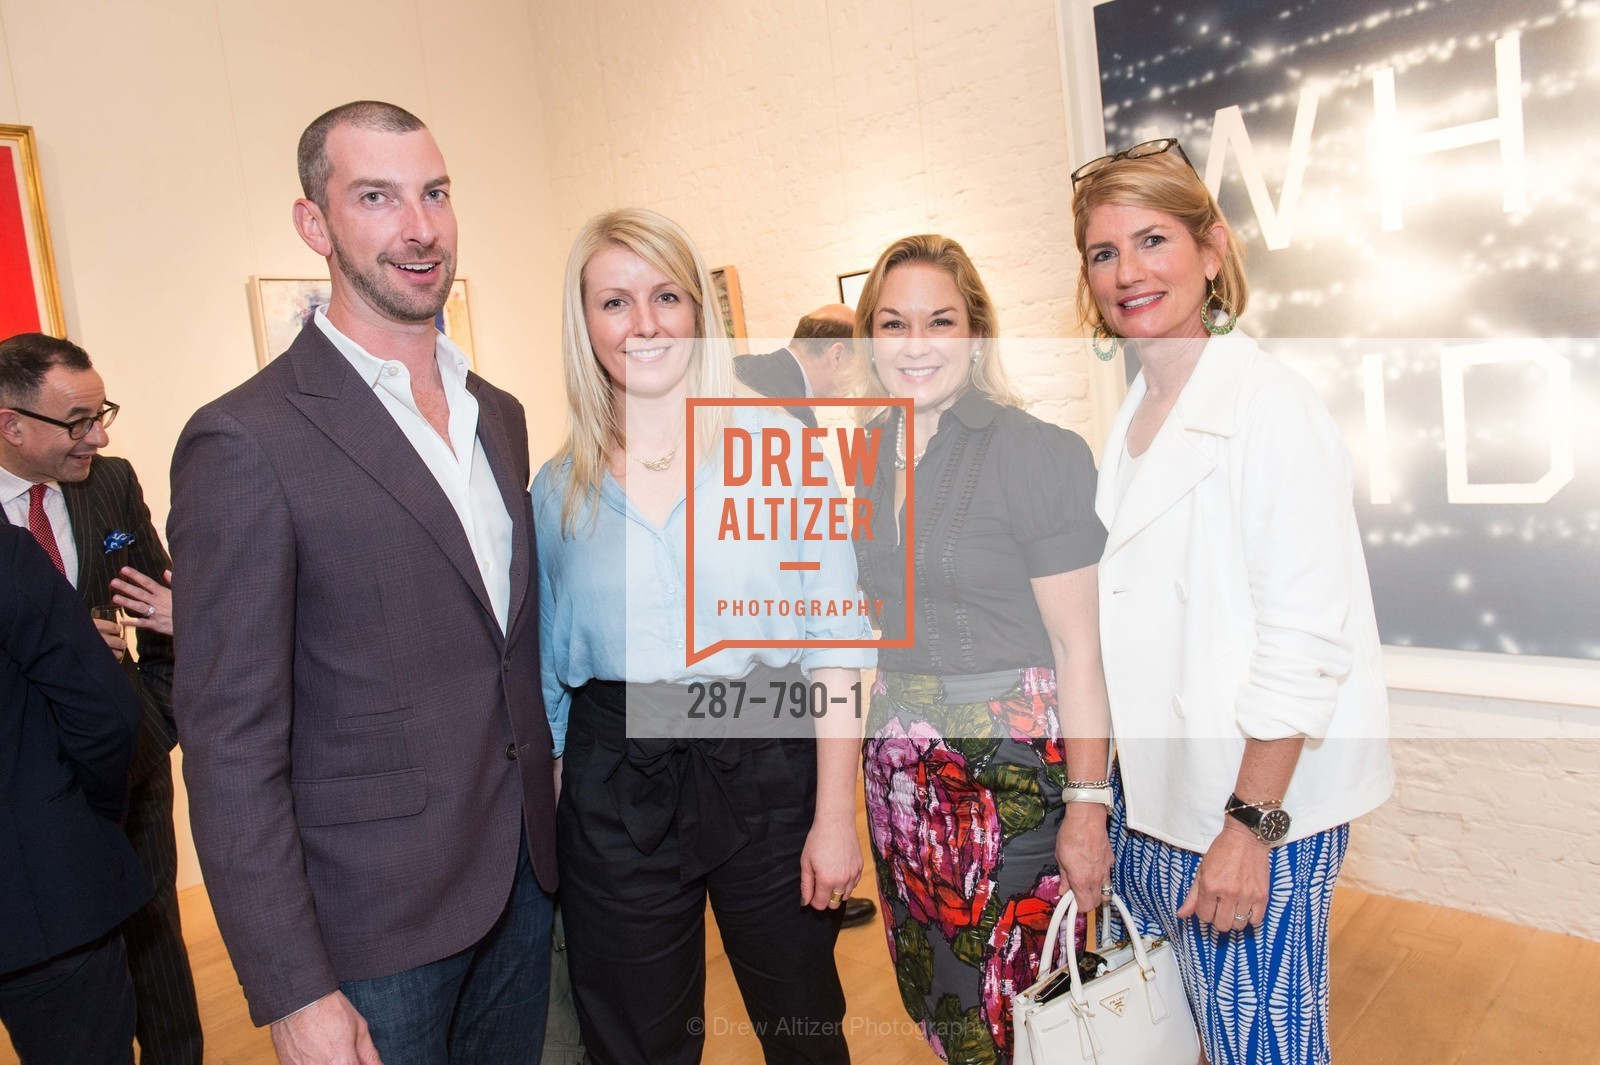 Andrew Teufel, Kira Lyons, Ana Dierkhifind, Mary Jane Dubois, Post War and Contemporary Preview at HEDGE GALLERY, US, April 16th, 2015,Drew Altizer, Drew Altizer Photography, full-service agency, private events, San Francisco photographer, photographer california